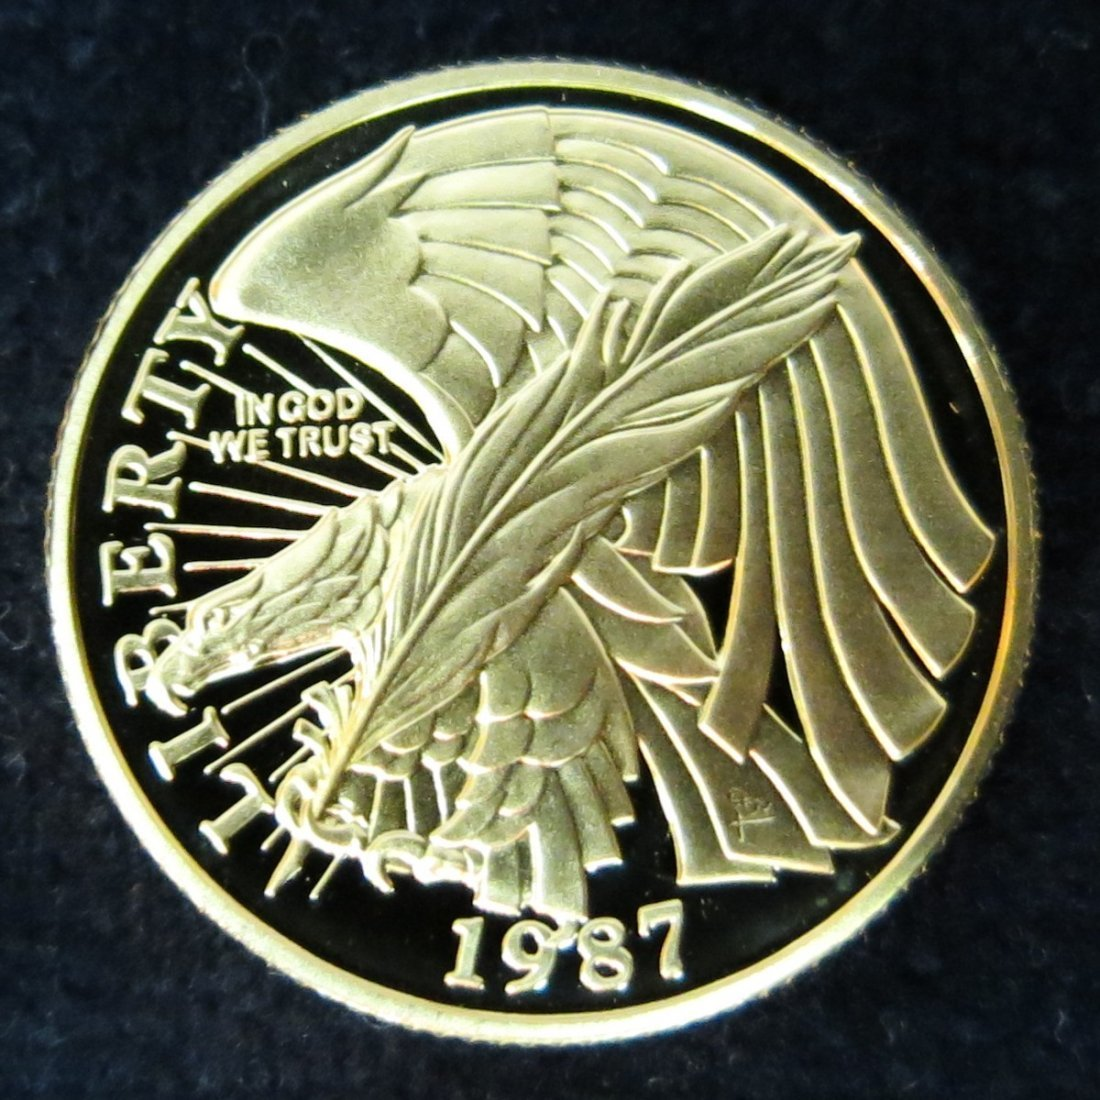 US 1987 CONSTITUTION $5 GOLD PROOF COIN